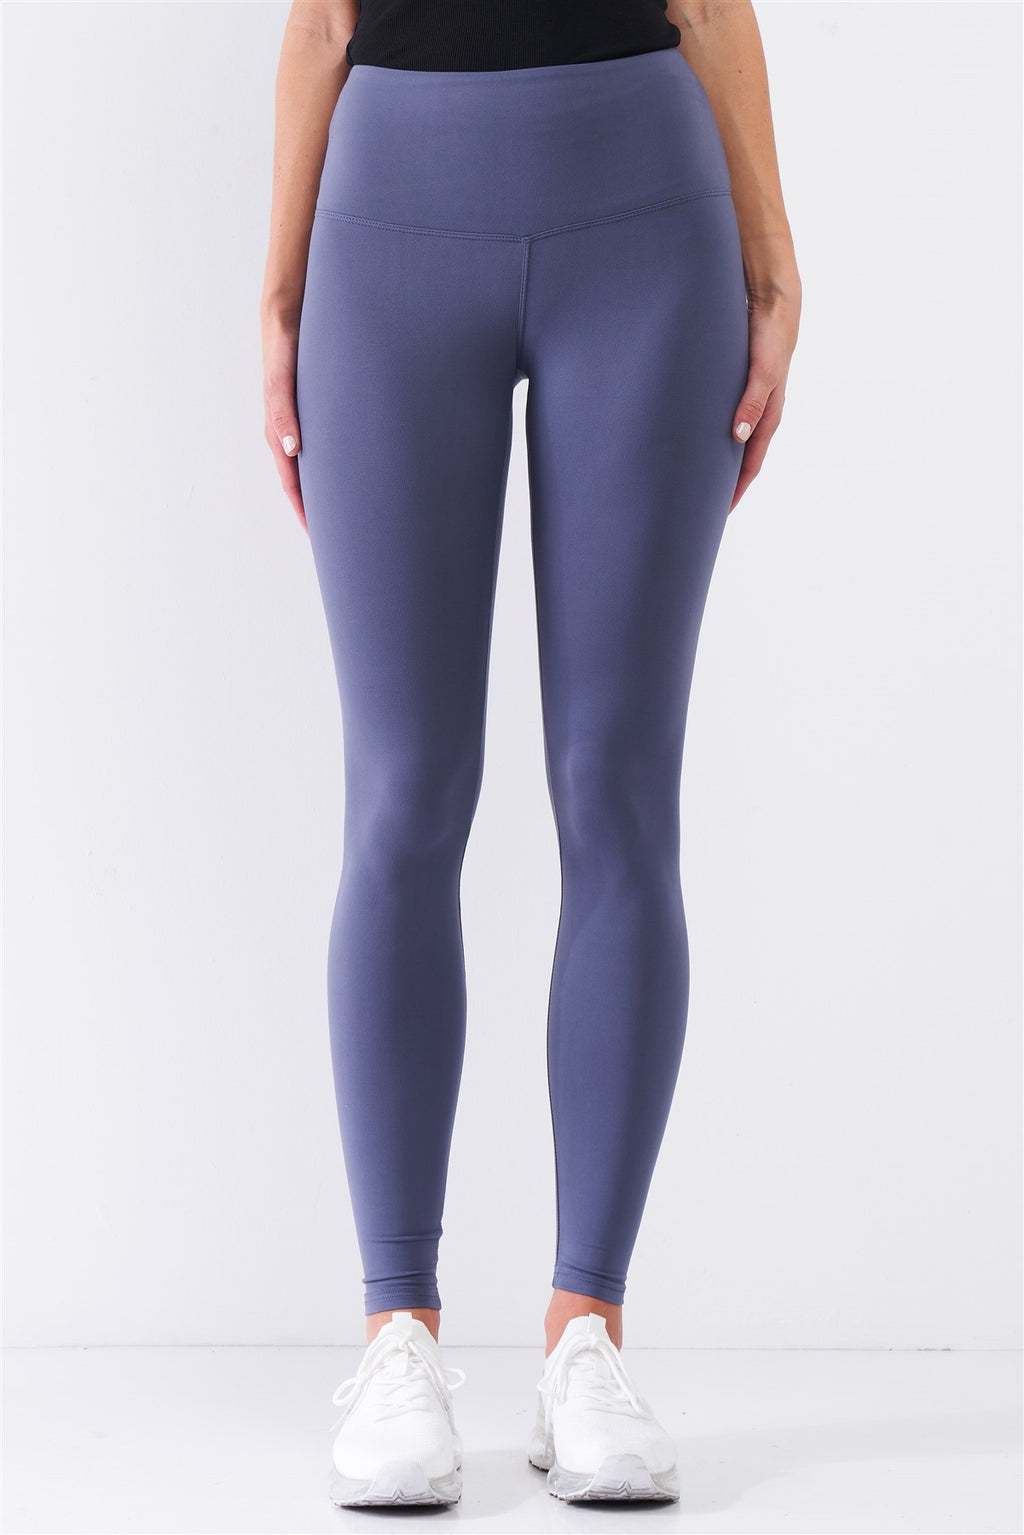 Violet Blue High-Rise Soft Legging Pants